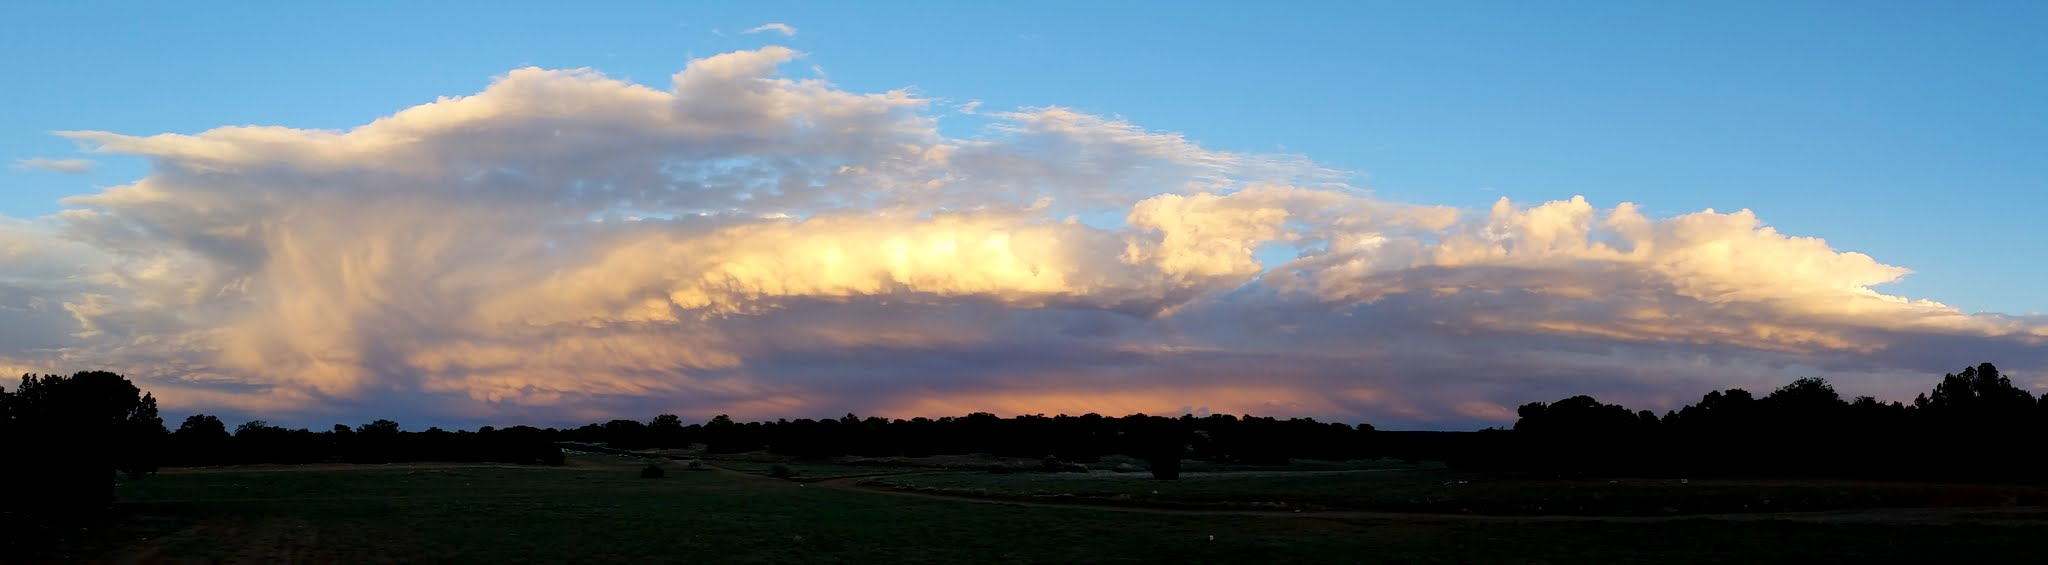 Photo: Passing storm clouds at sunset